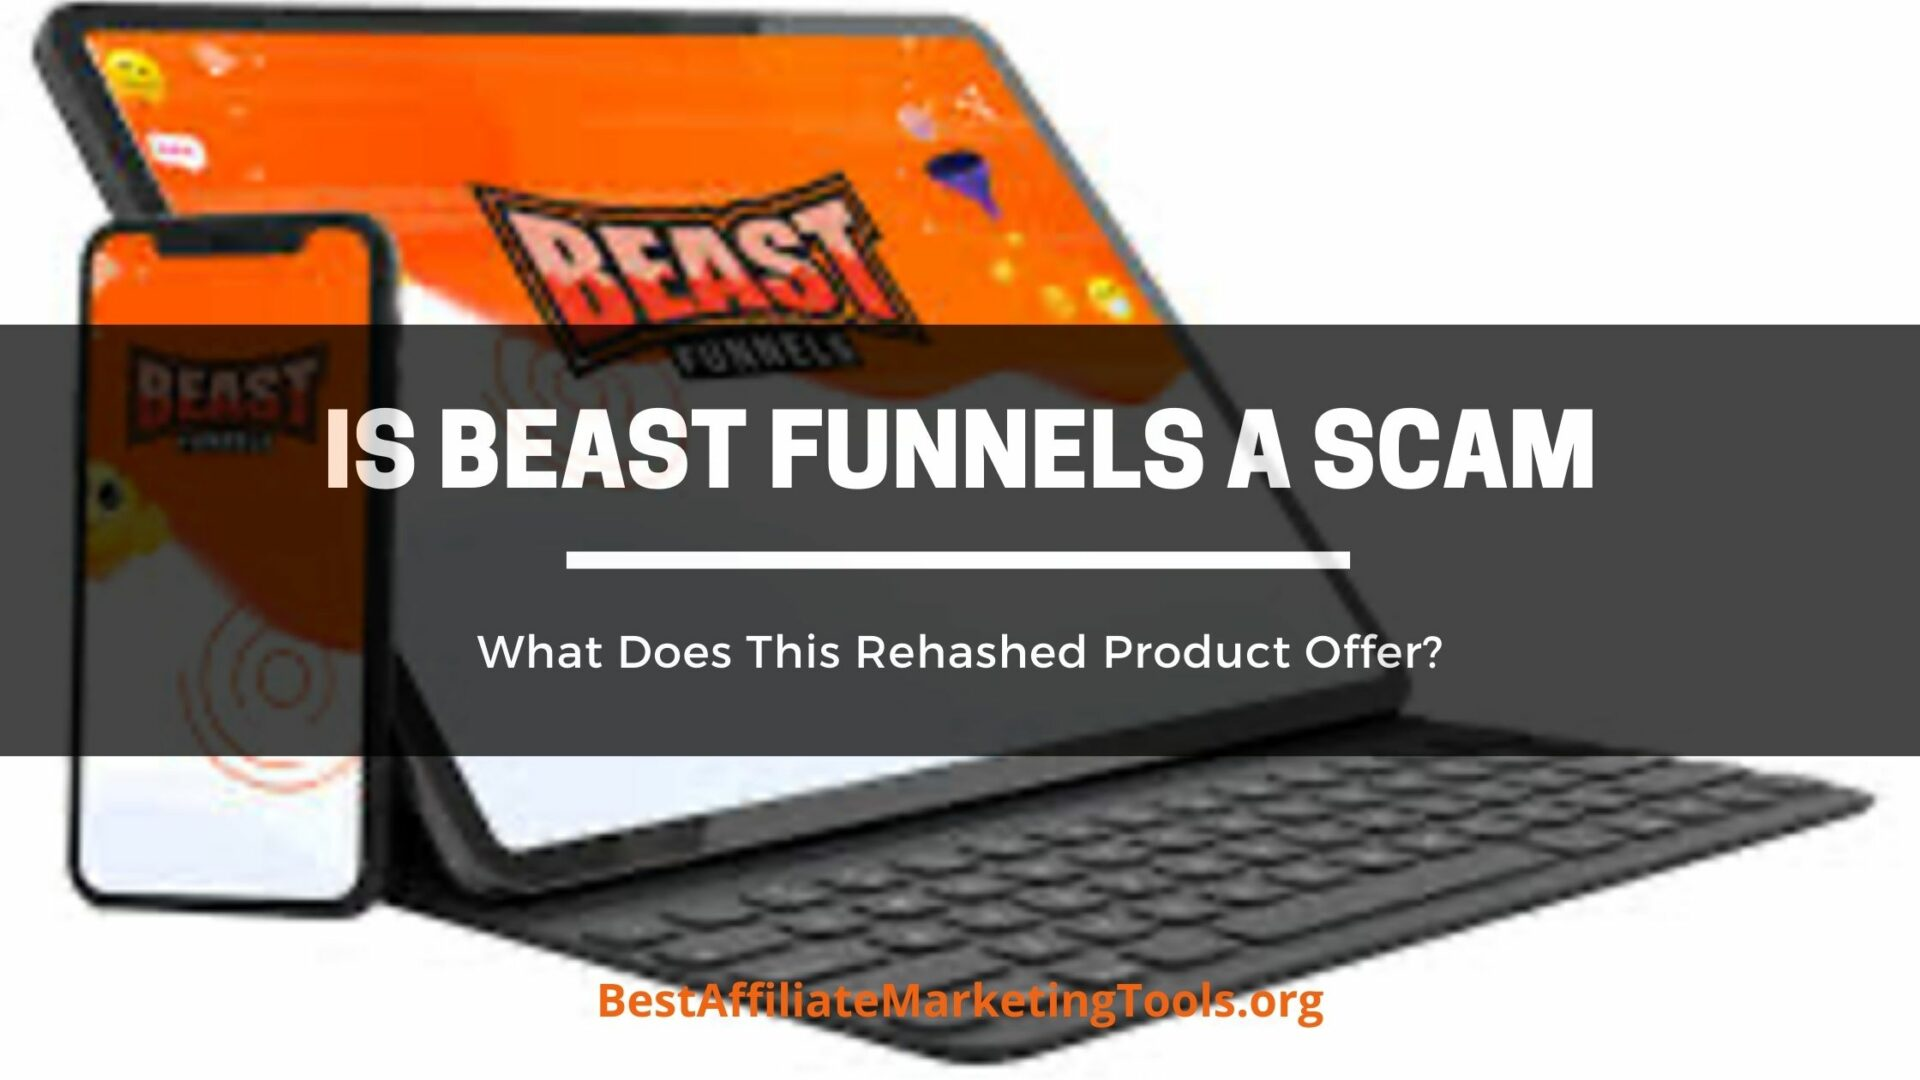 Is Beast Funnels a Scam